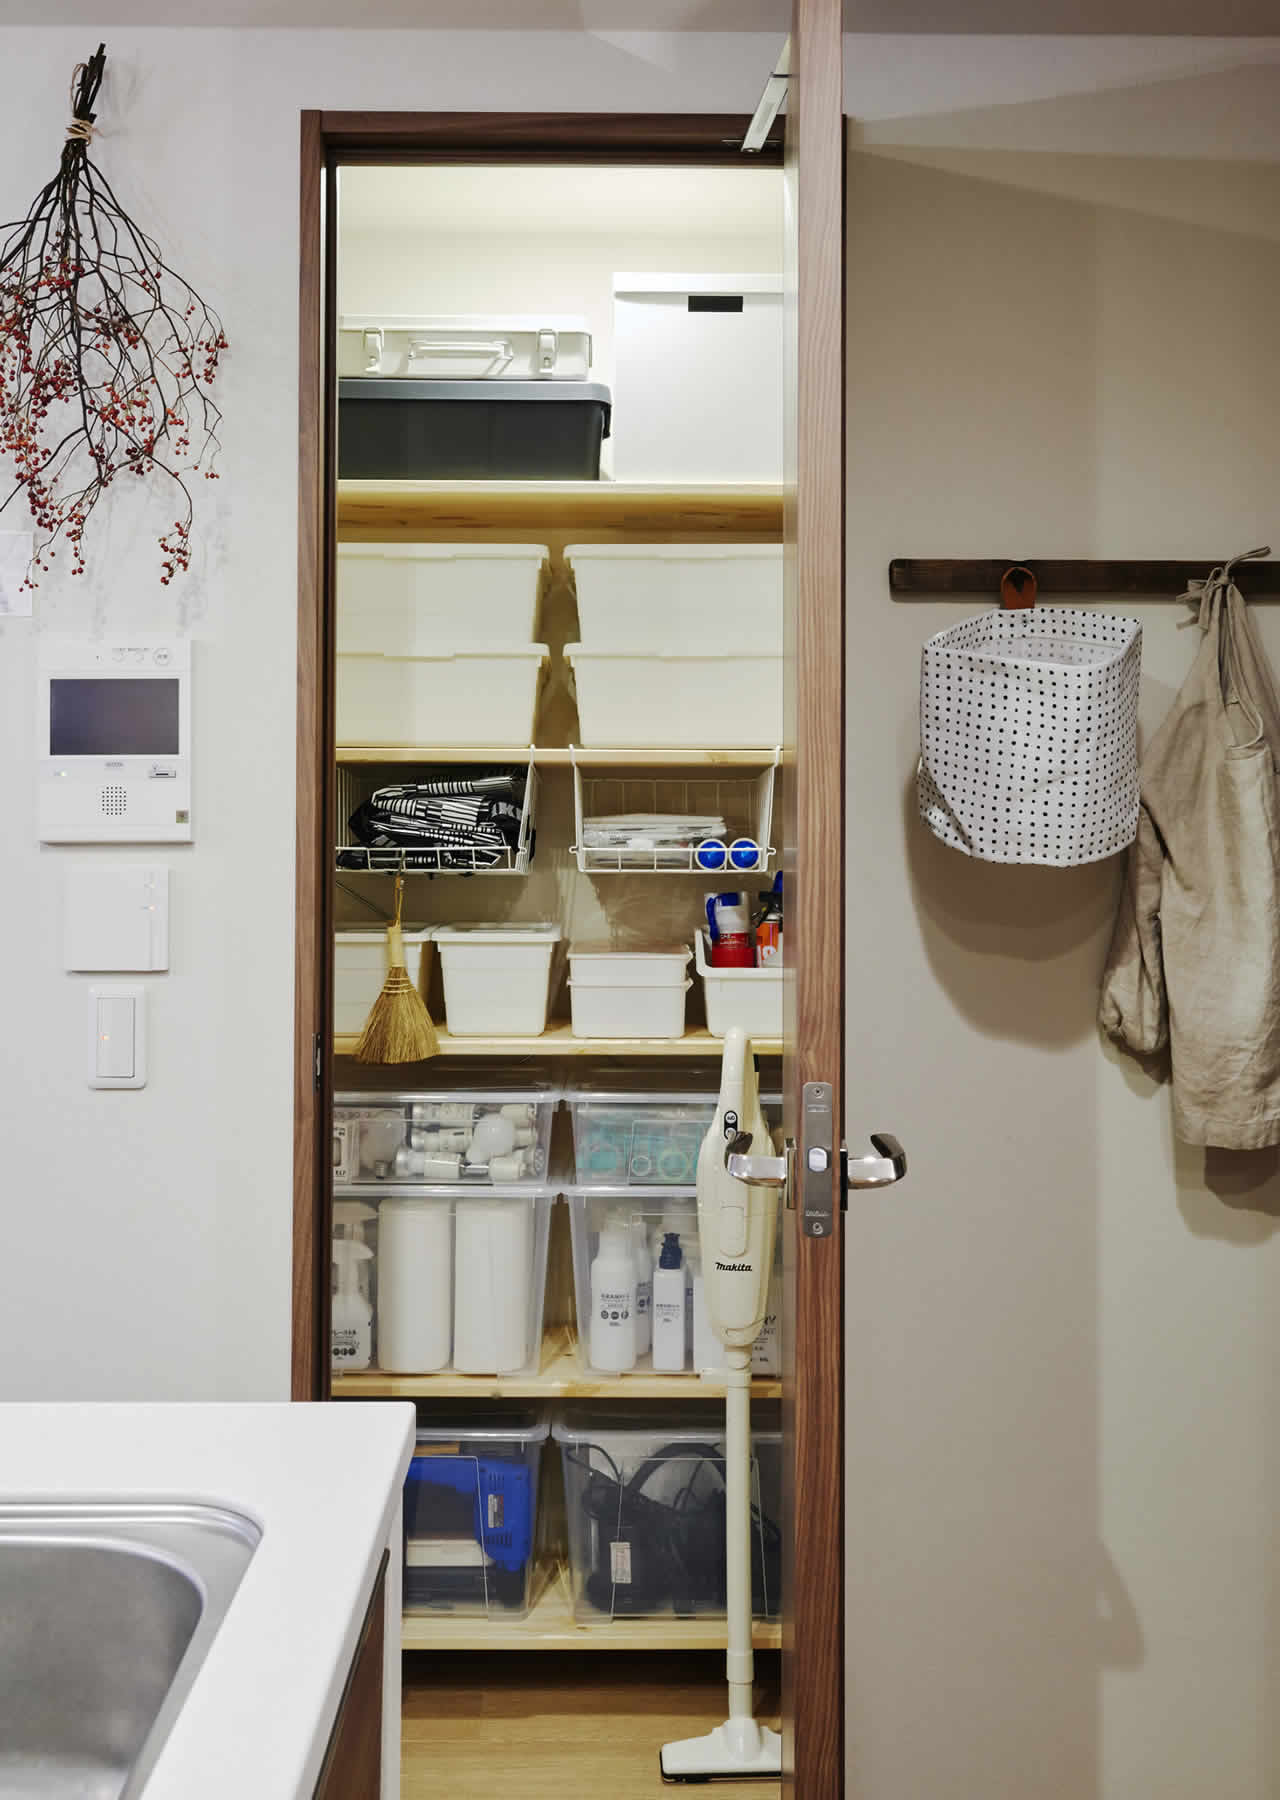 IKEA Ideas - Home visit: A small city home made for family time